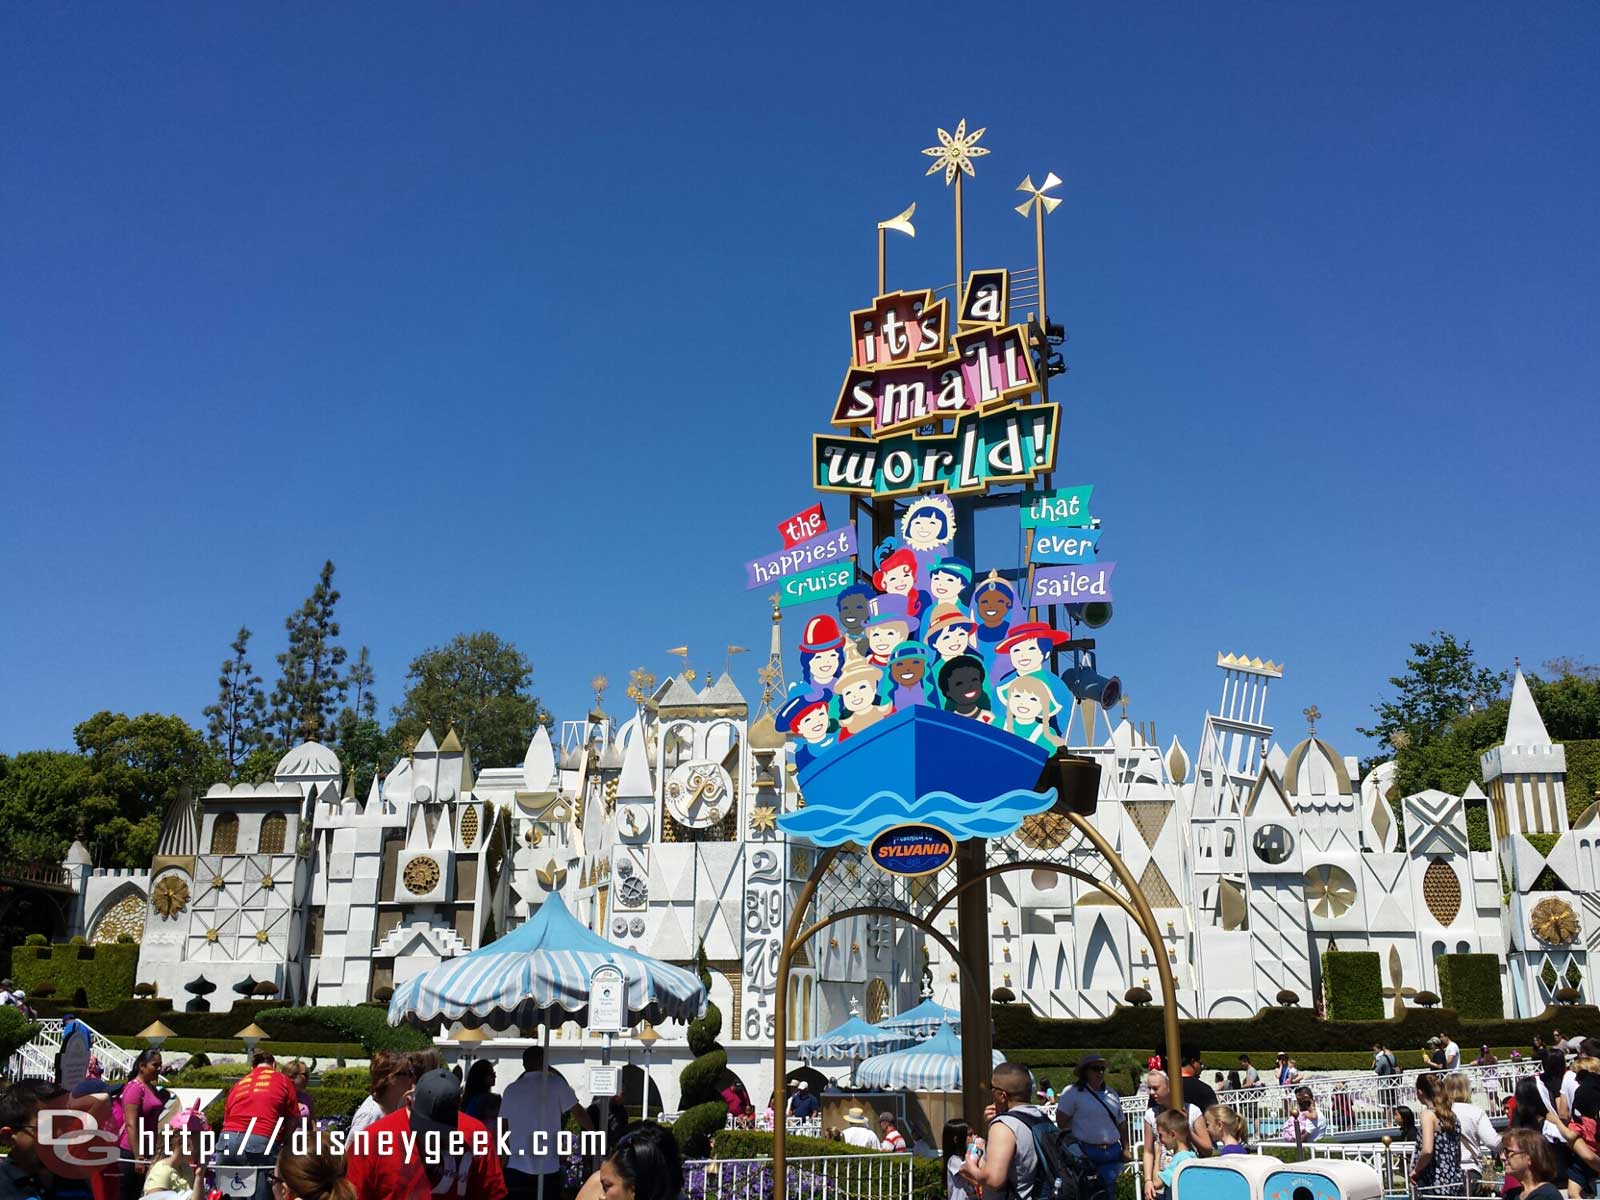 It's a small world has reopened for a couple weeks, yesterday they celebrated the 50th Anniversary of the attraction.  It opened 4/22/1964 @ the World's Fair in NY